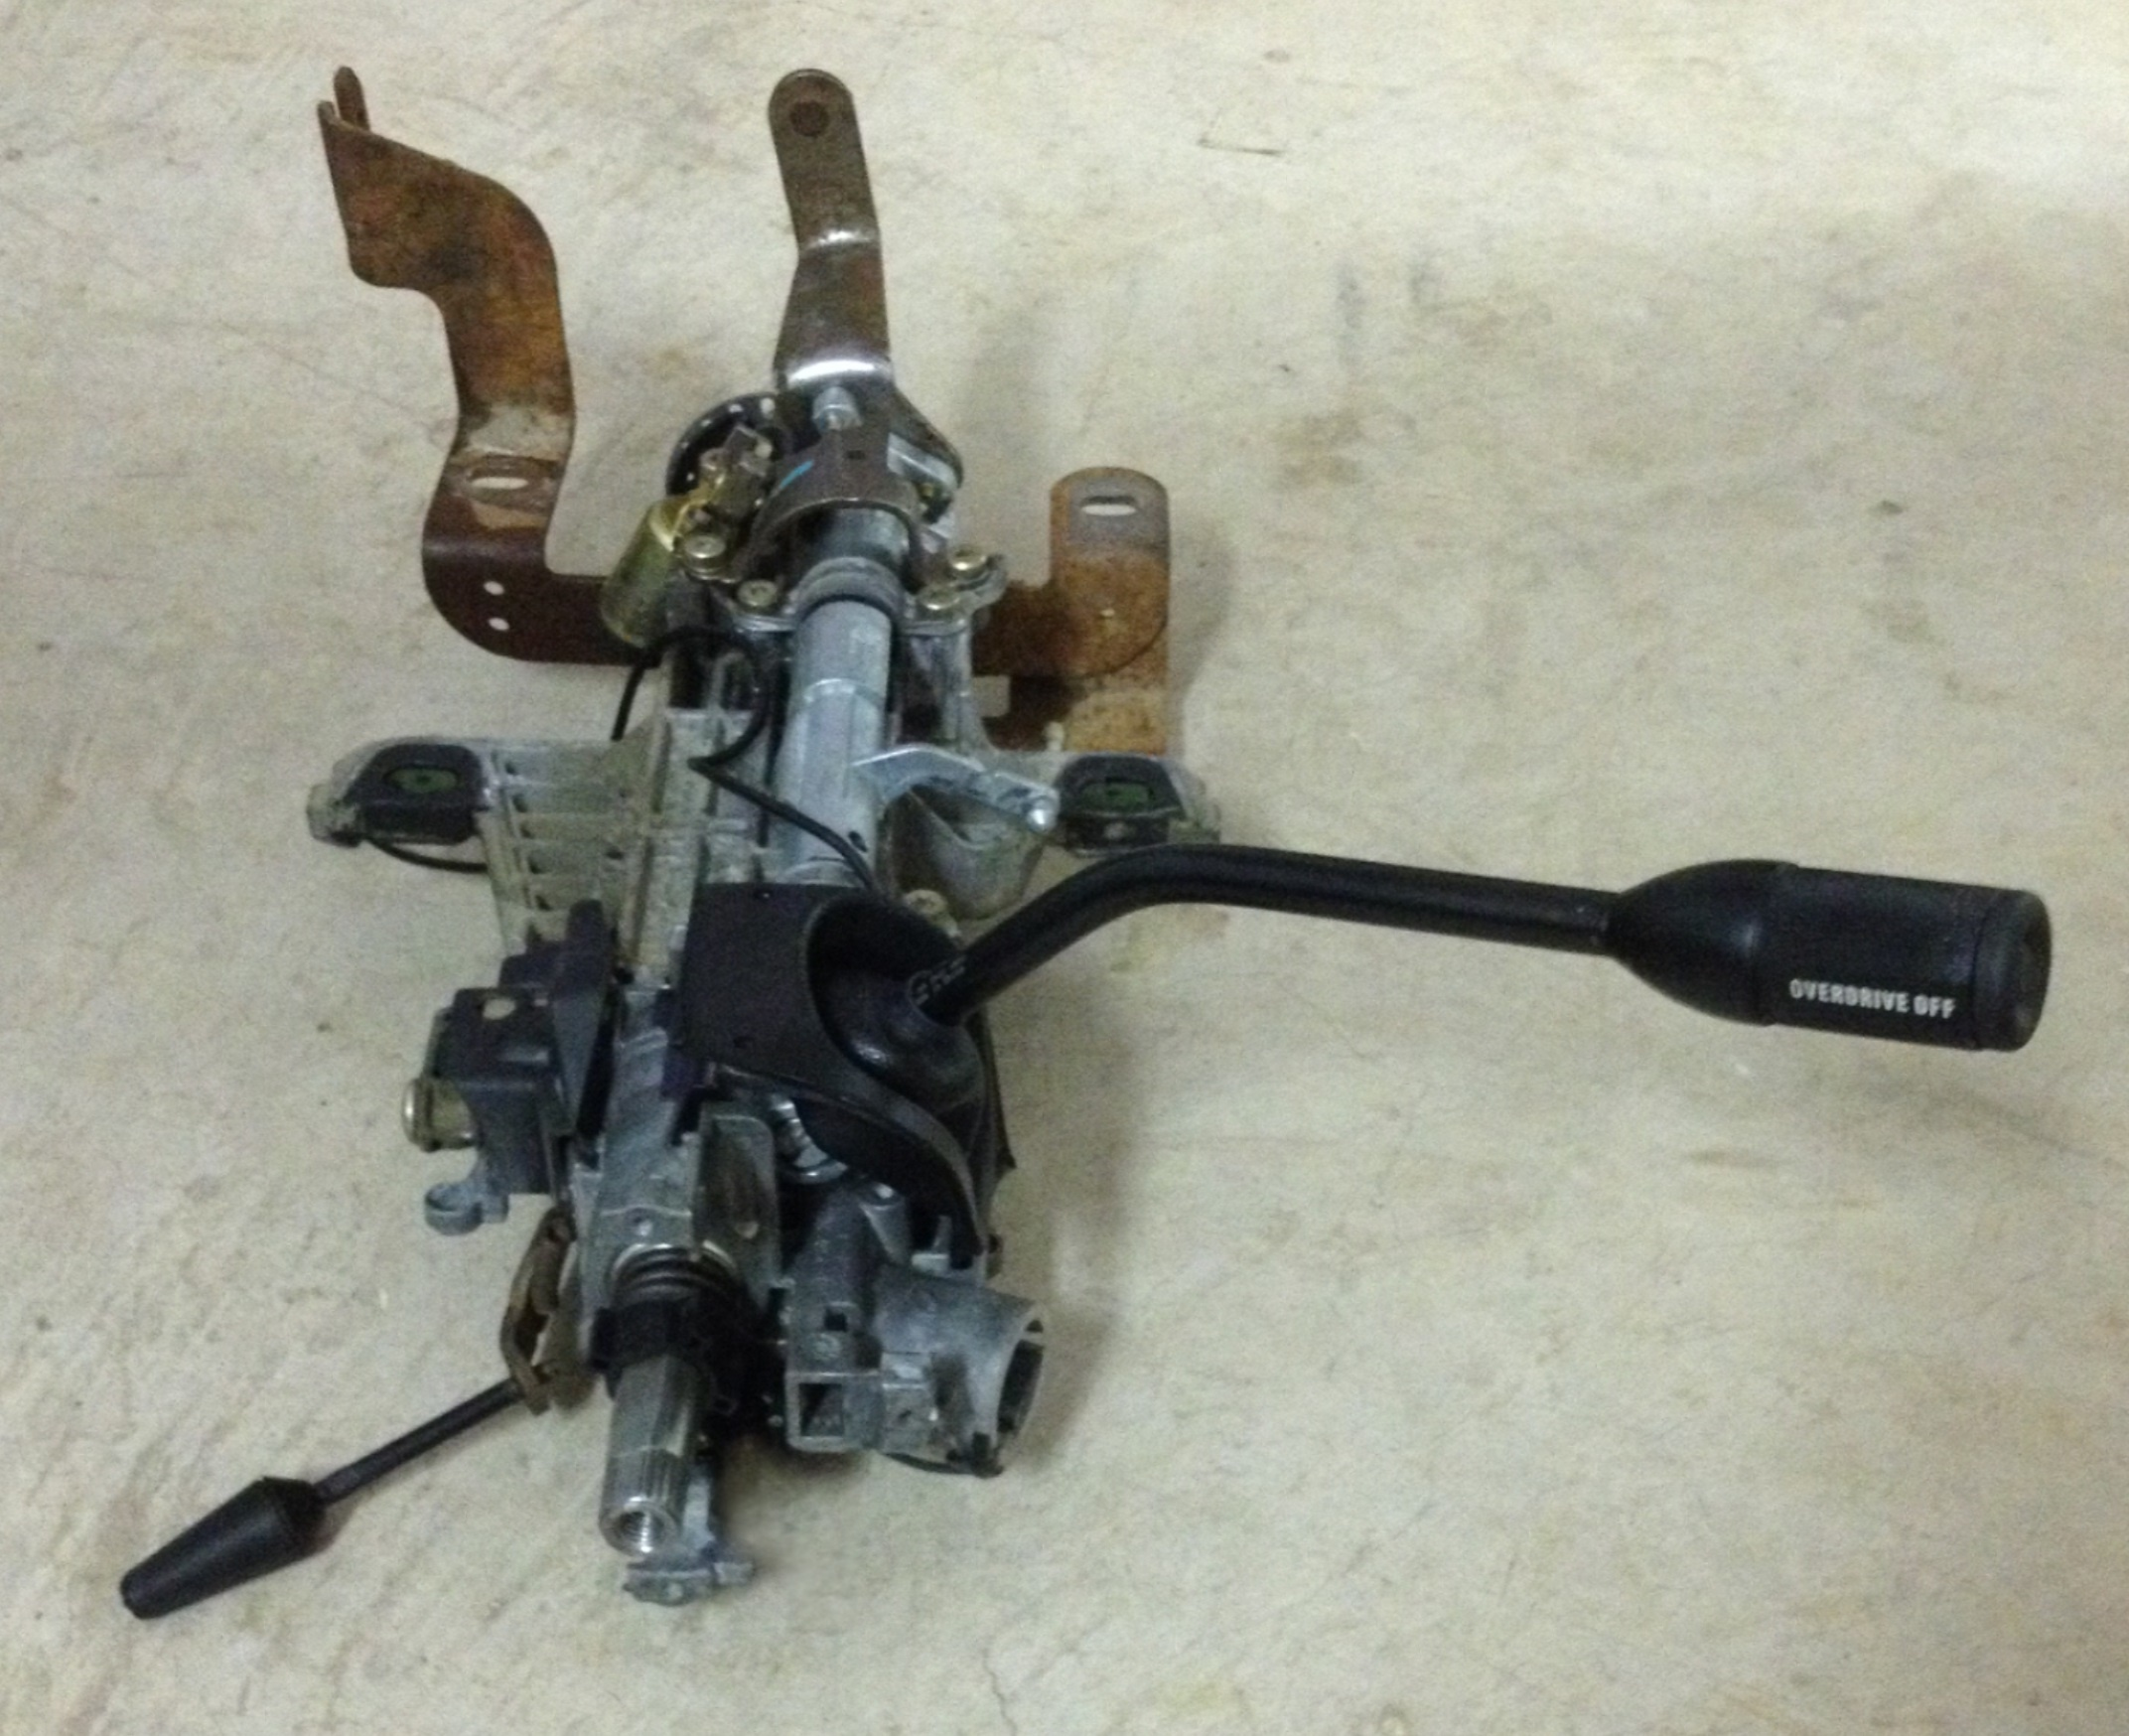 F-250, F-350, F-450, E150, E250, E350 Ford Rebuilt Steering Columns on 97 f150 solenoid, 97 grand prix wiring diagram, 97 camaro wiring diagram, 97 e150 wiring diagram, 97 f150 steering, 97 altima wiring diagram, 97 f150 window diagram, 97 f150 heater diagram, 97 f150 fuse box diagram, 97 f150 door, 97 thunderbird wiring diagram, 97 ford wiring diagram, 97 f150 6 inch lift, 97 f150 shocks diagram, 97 jetta wiring diagram, 97 4runner wiring diagram, 97 dodge wiring diagram, 97 grand marquis wiring diagram, 97 jeep wiring diagram, 97 f150 oil filter,